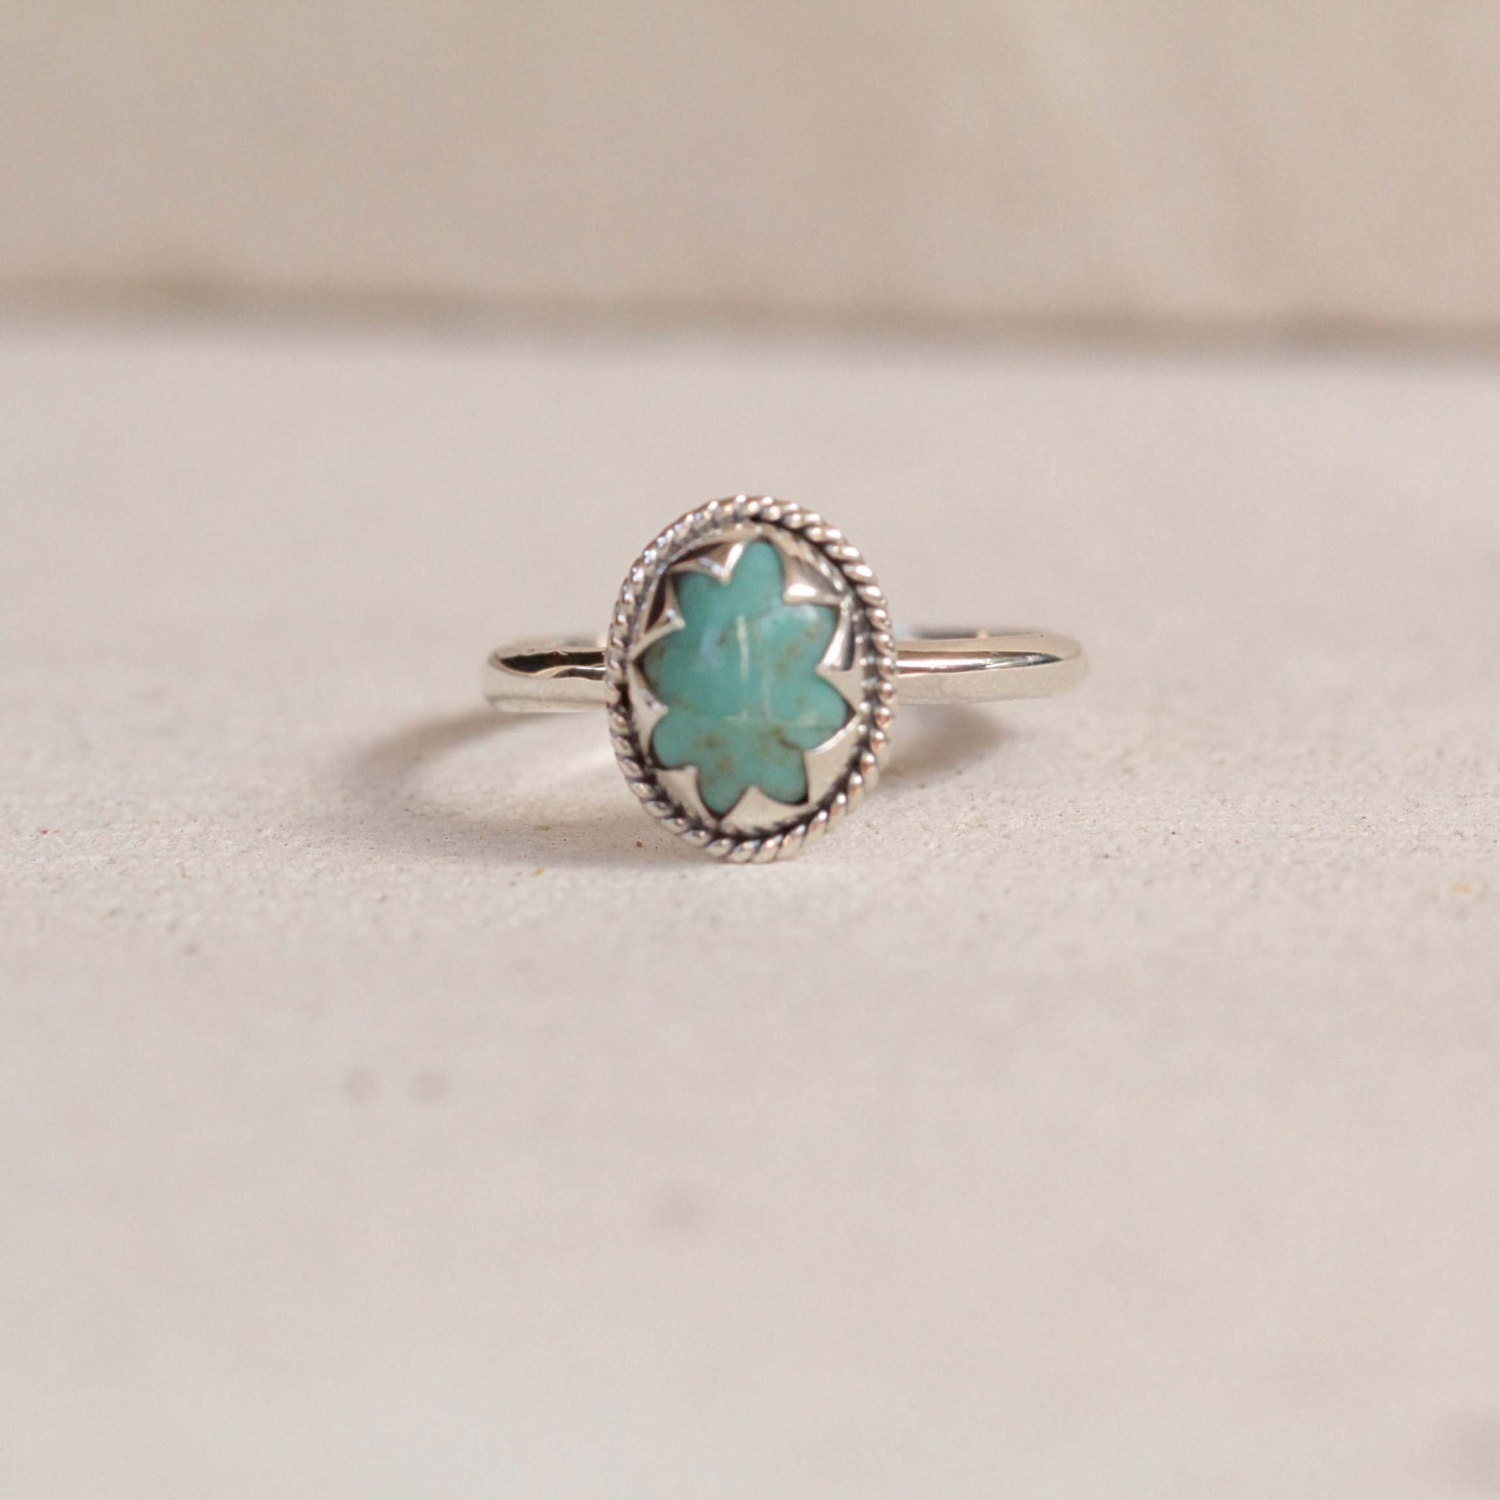 silver stone ideally rings ring pin turquoise pinterest